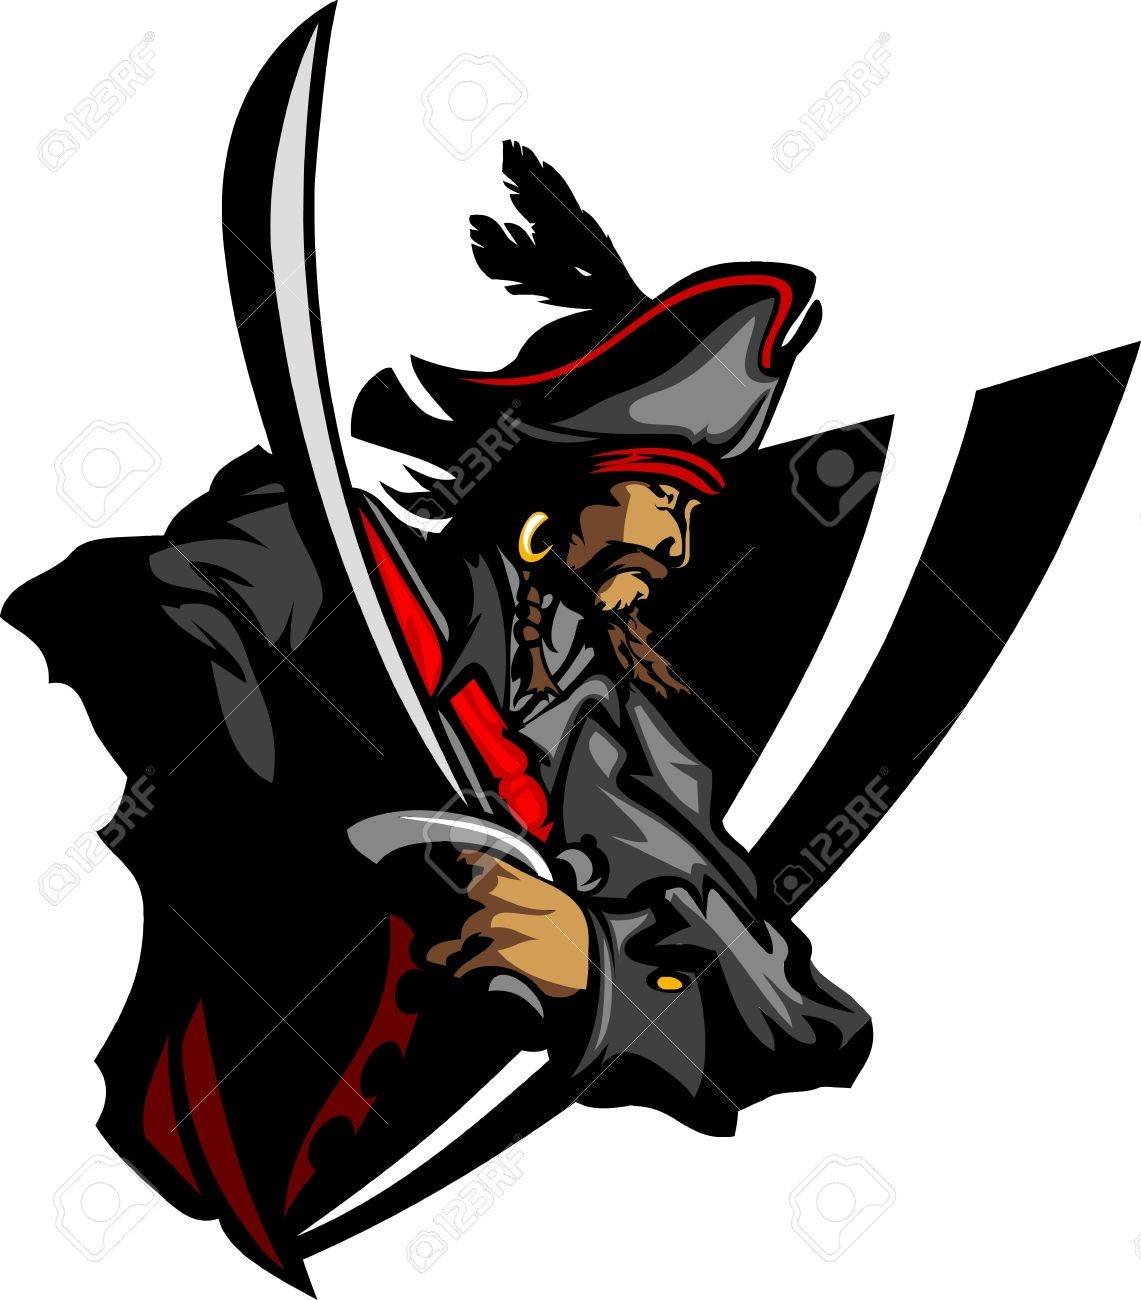 Pirate Mascot with Sword and Hat Graphic Illustration Stock Vector - 10303495